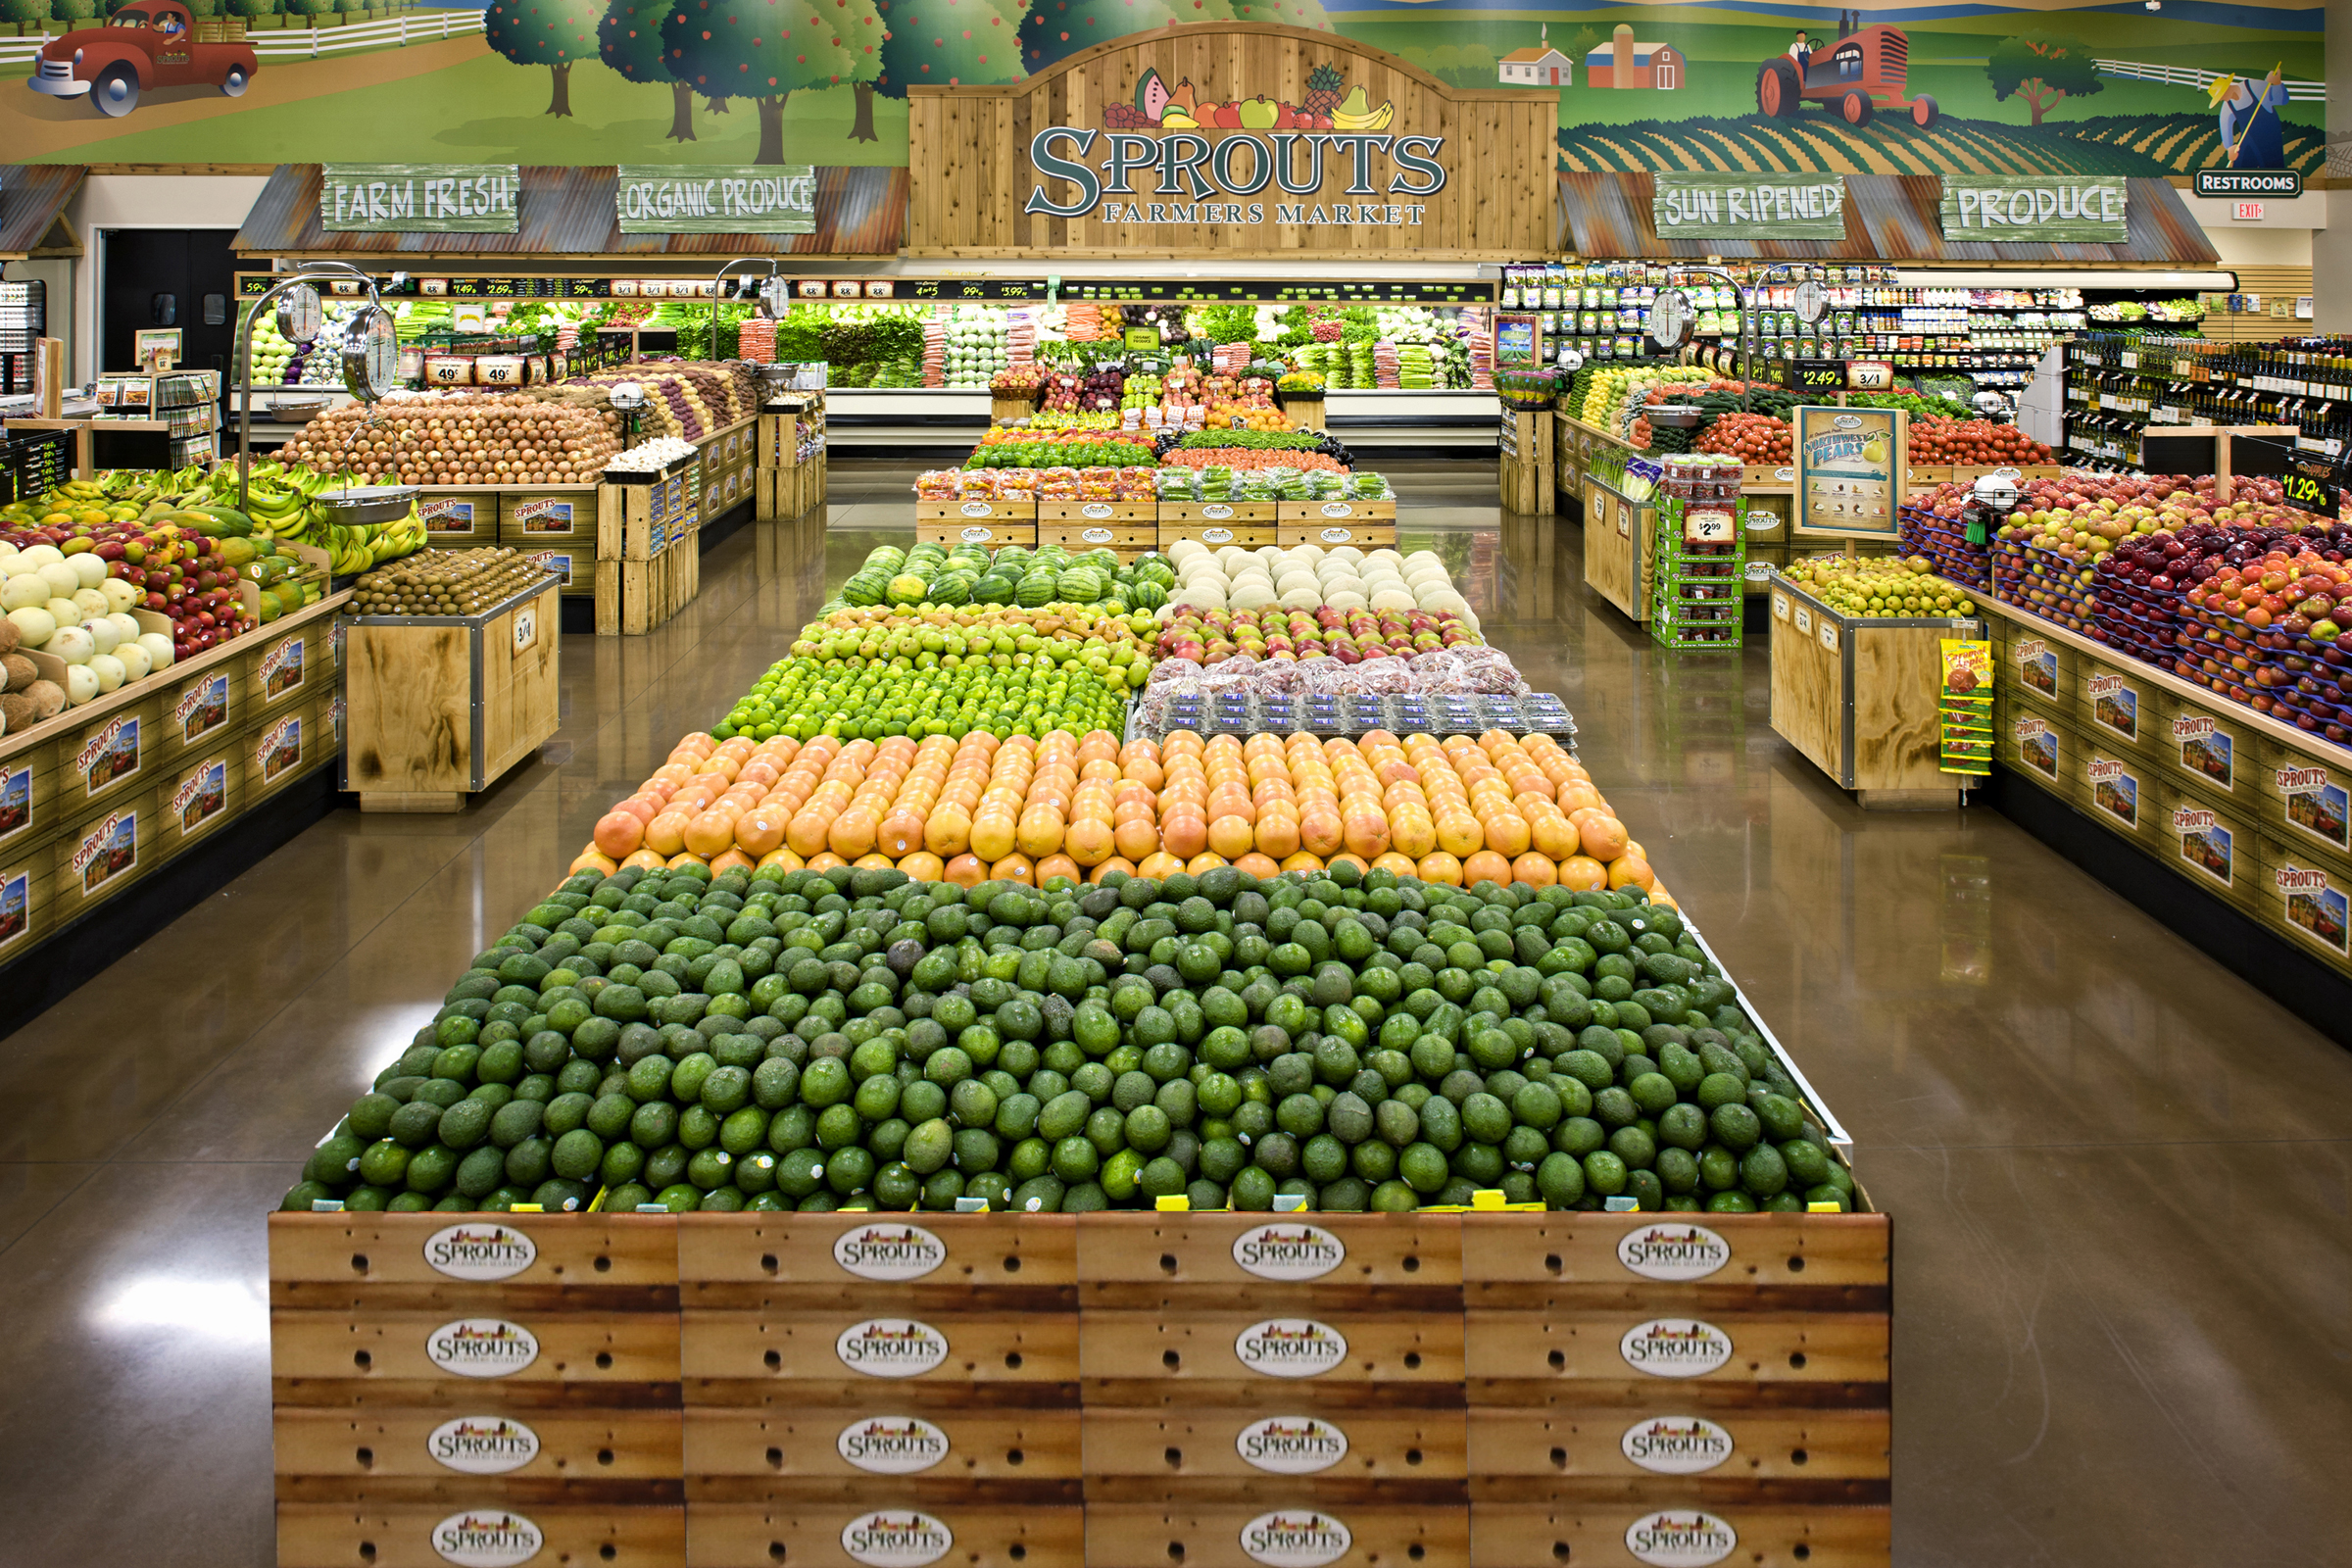 Sprouts-Produce copy.jpg